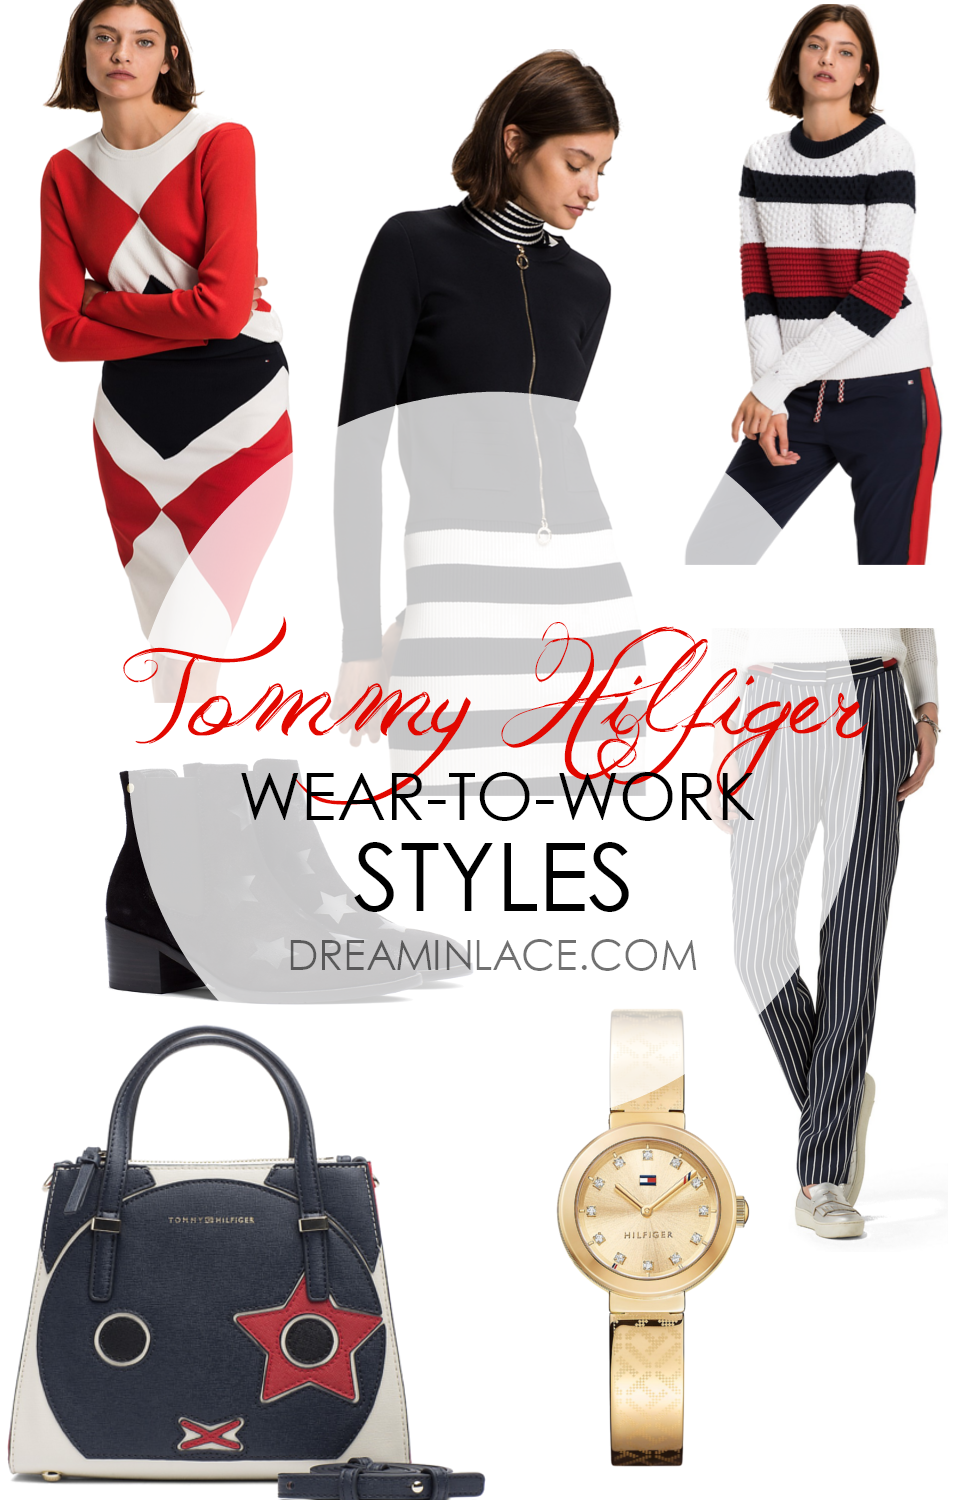 Tommy Hilfiger Wear to Work Style I DreaminLace.com